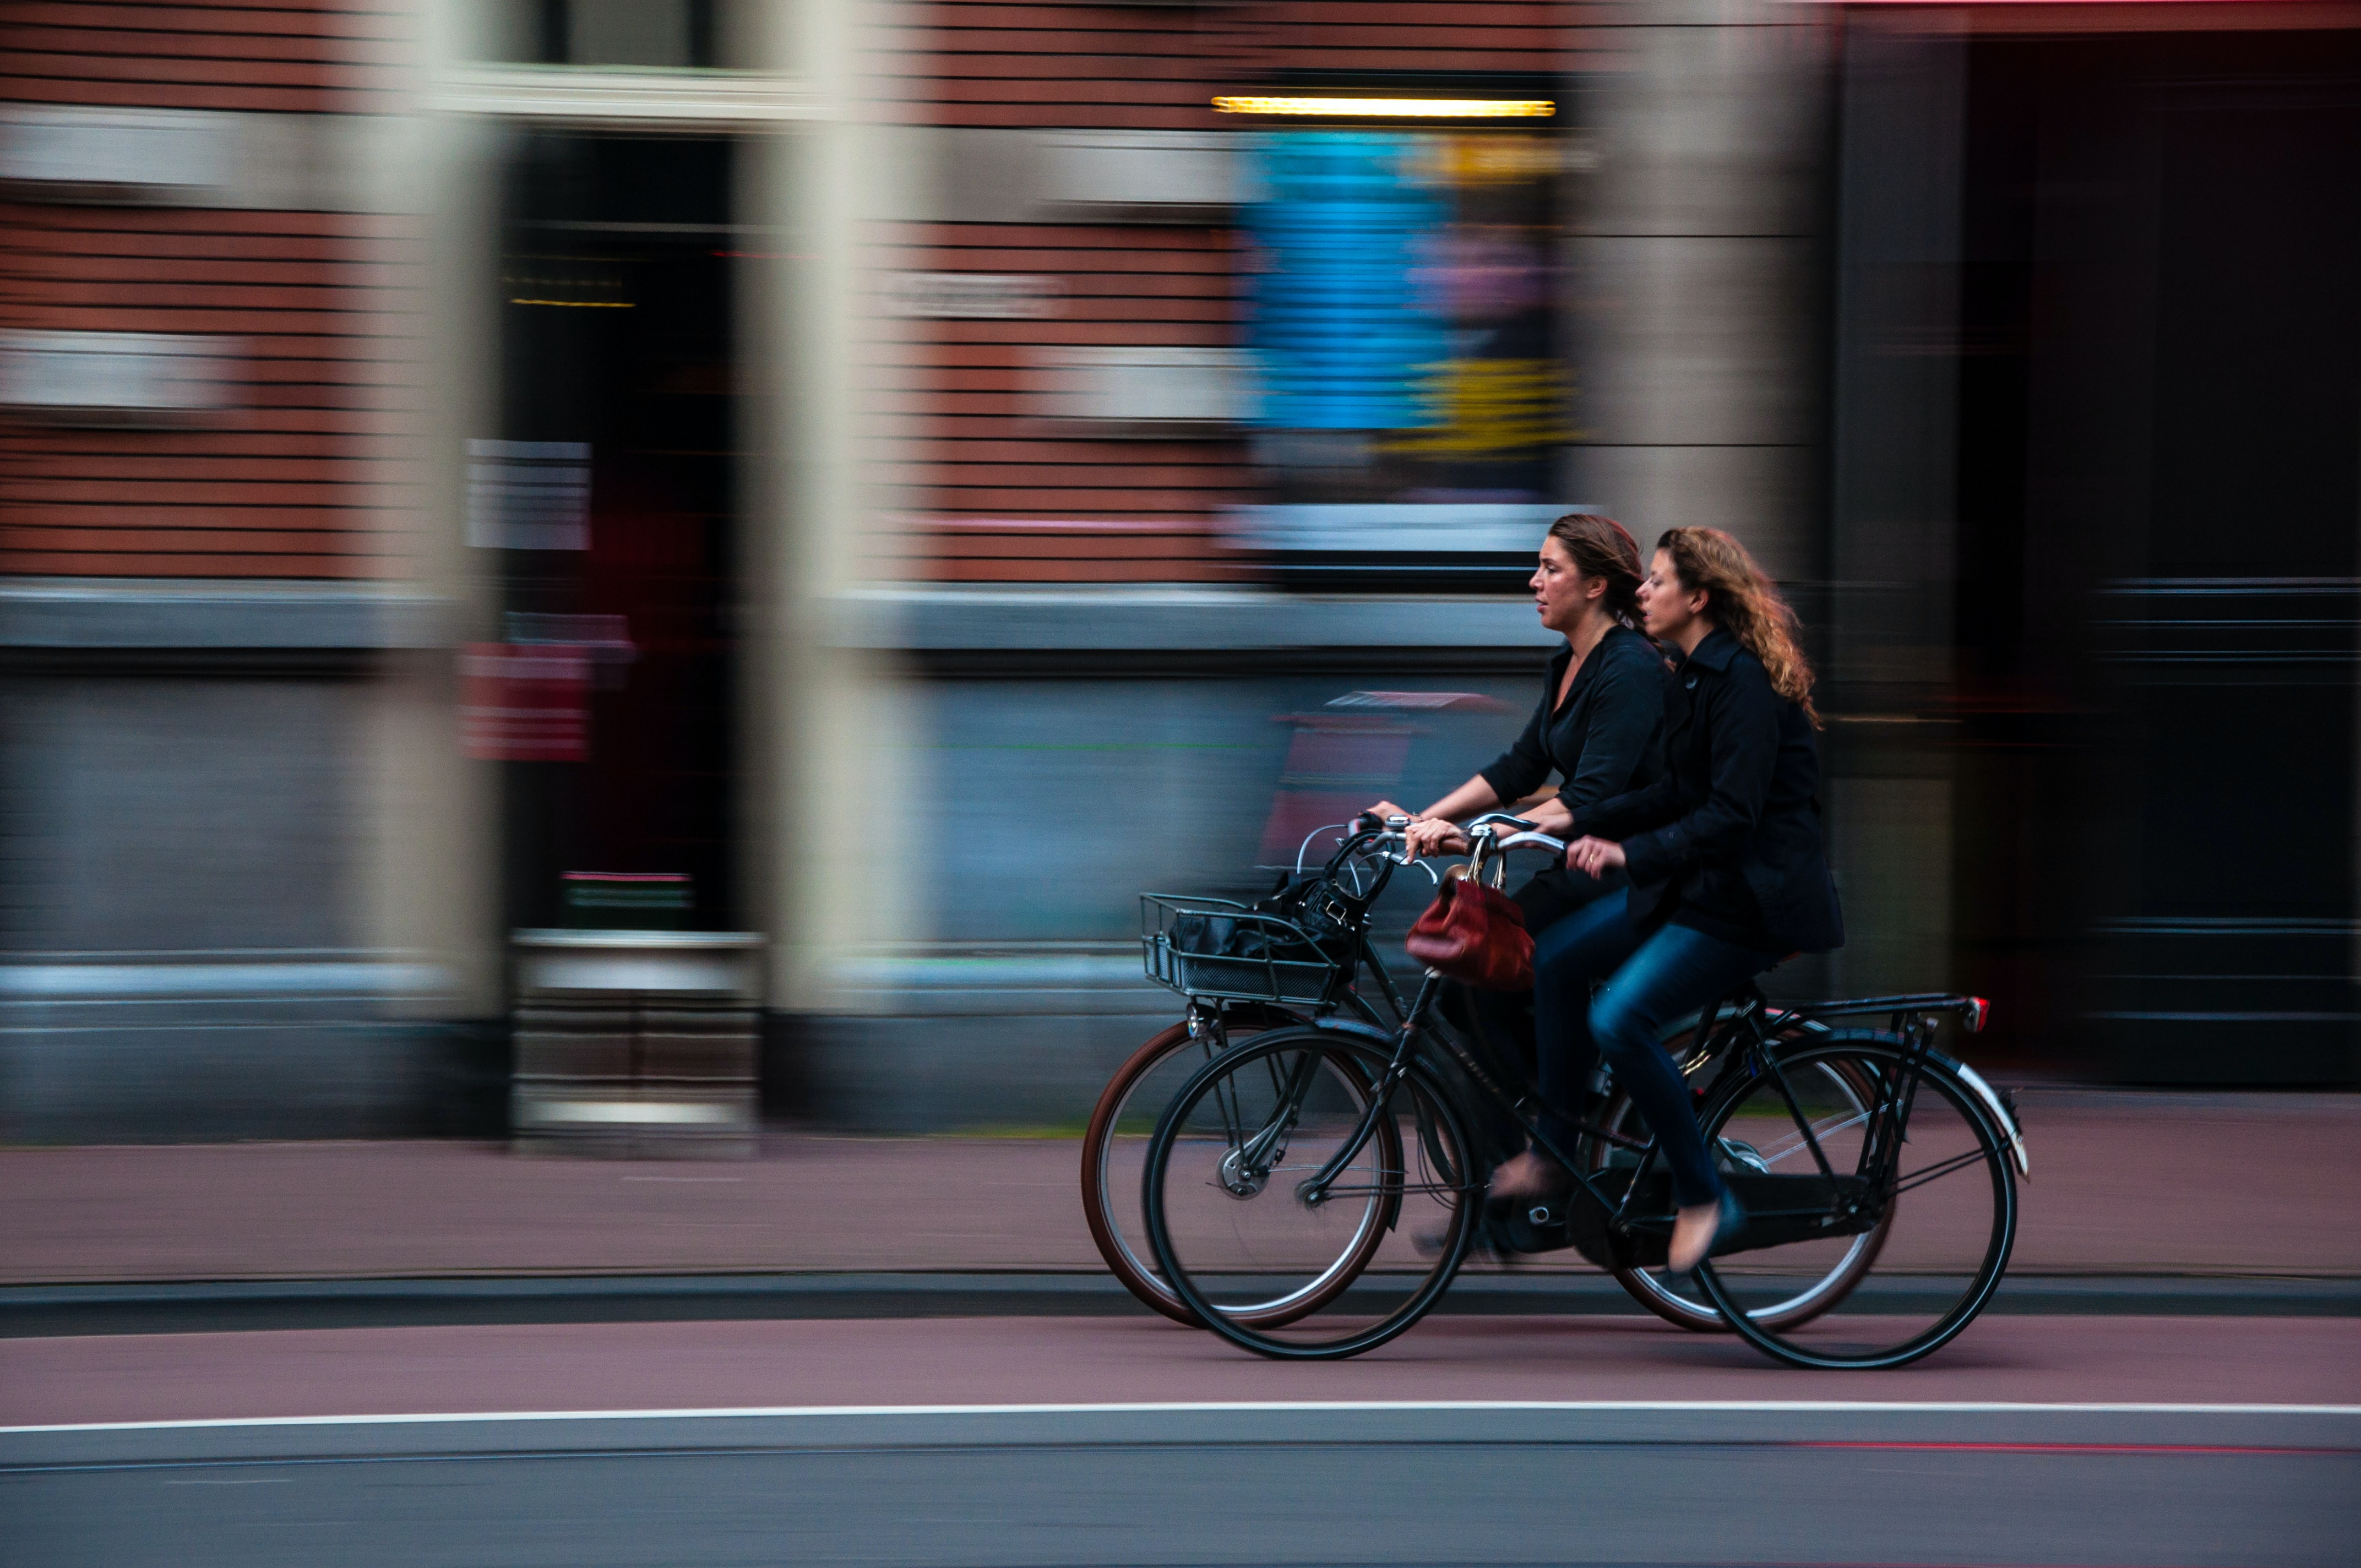 Two women riding their bicycles down the street in the bike lane